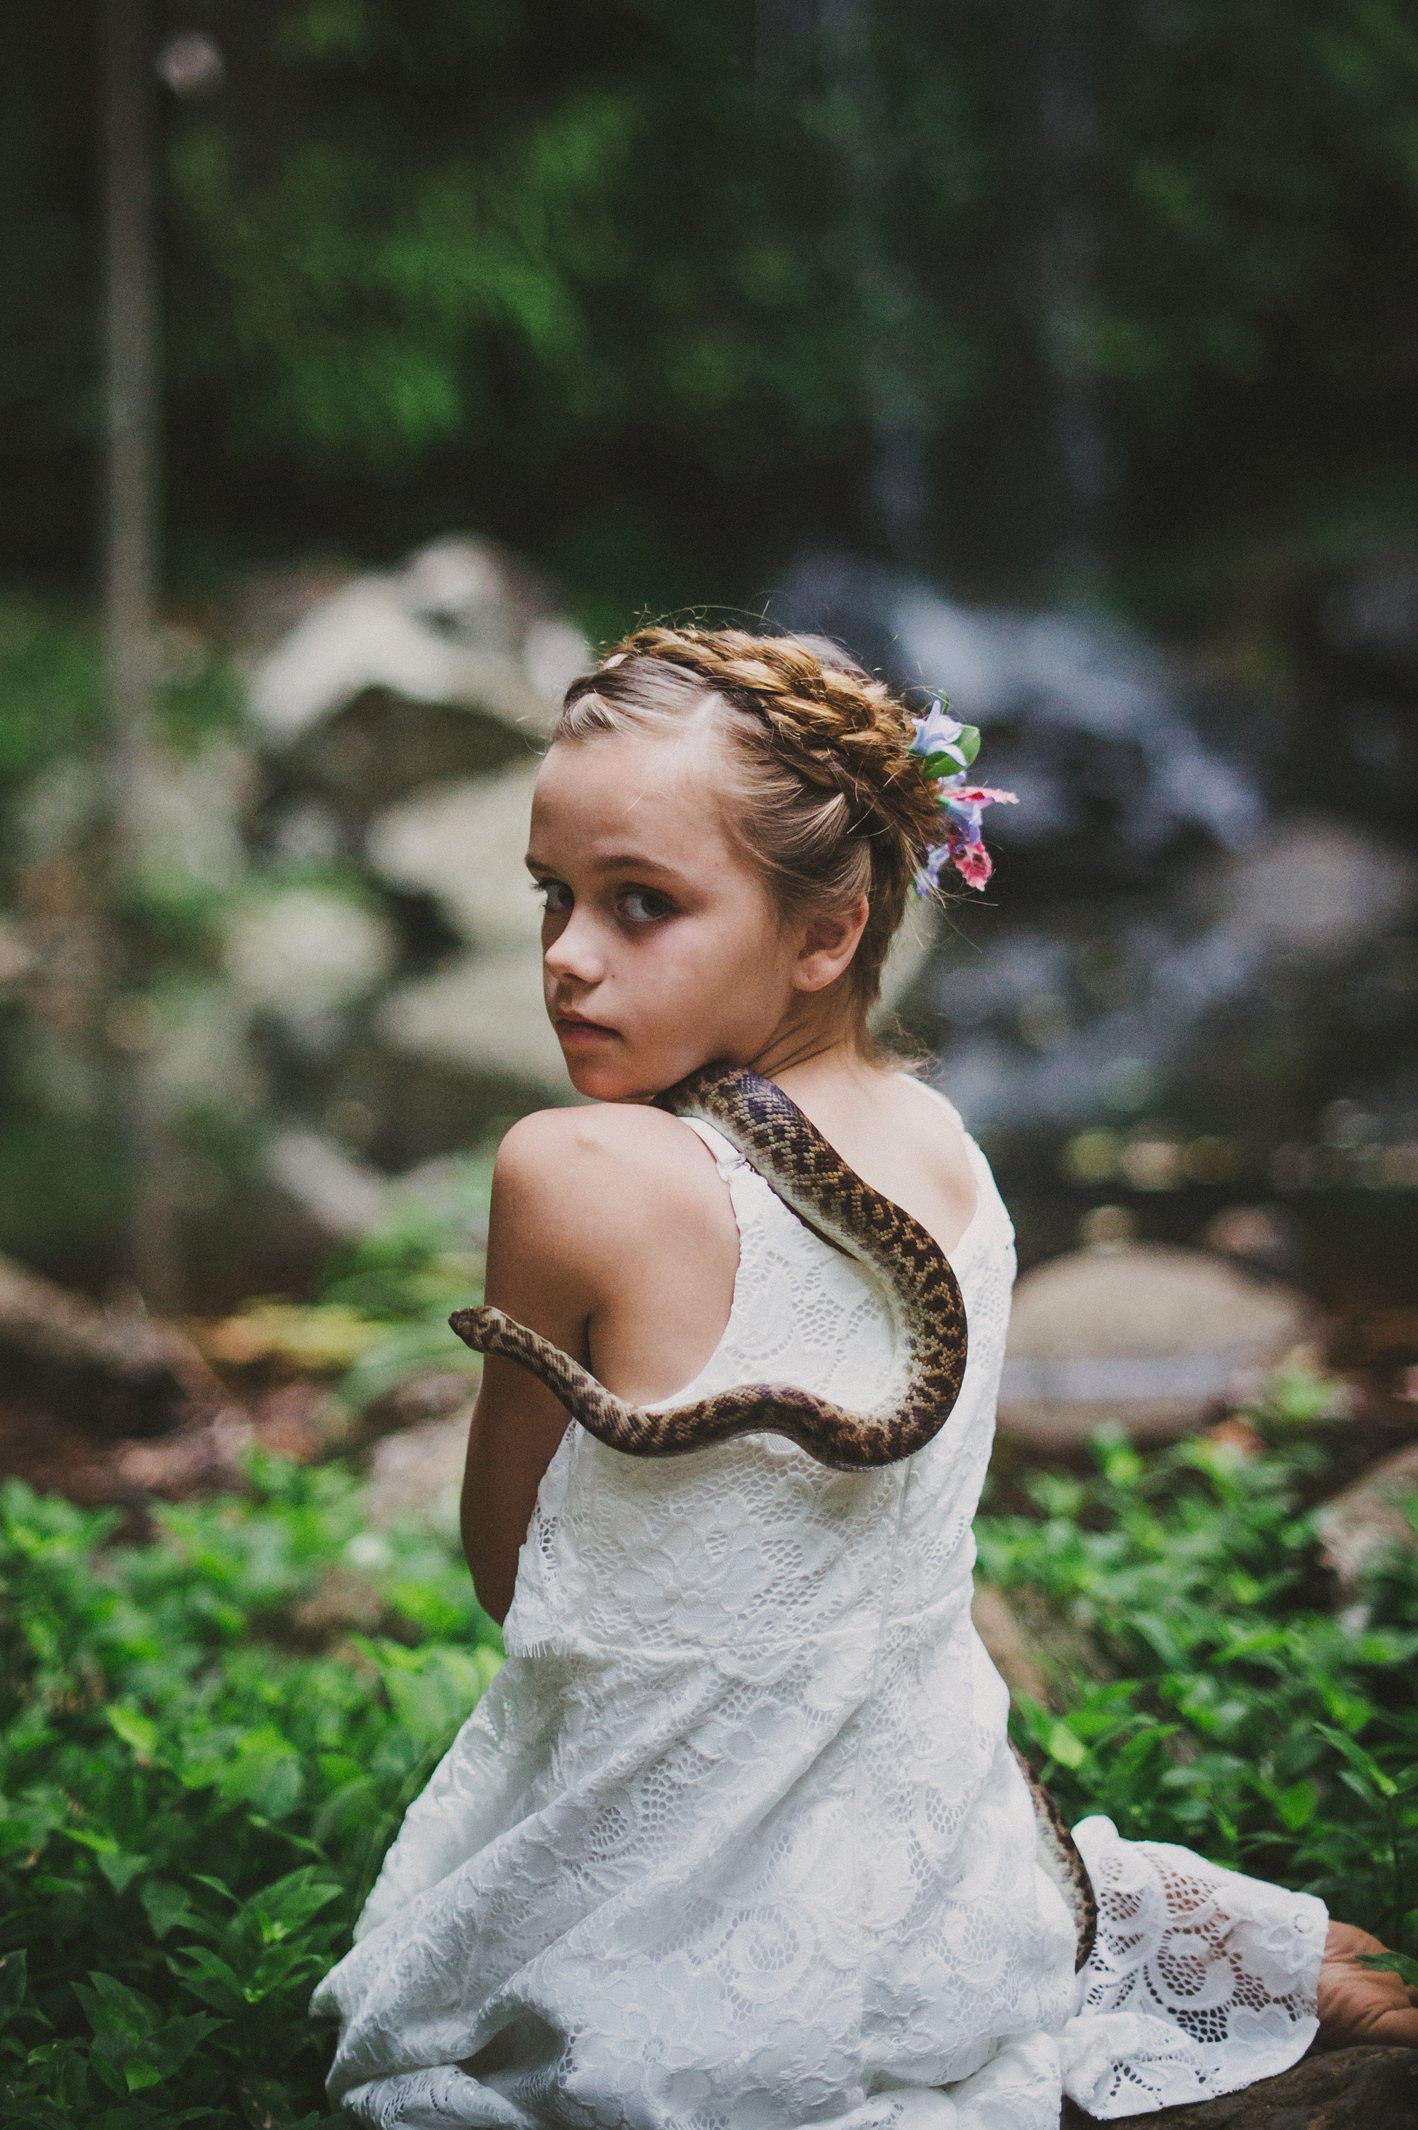 013-python-flowers_crown-of-eden_sophie-baker-photography